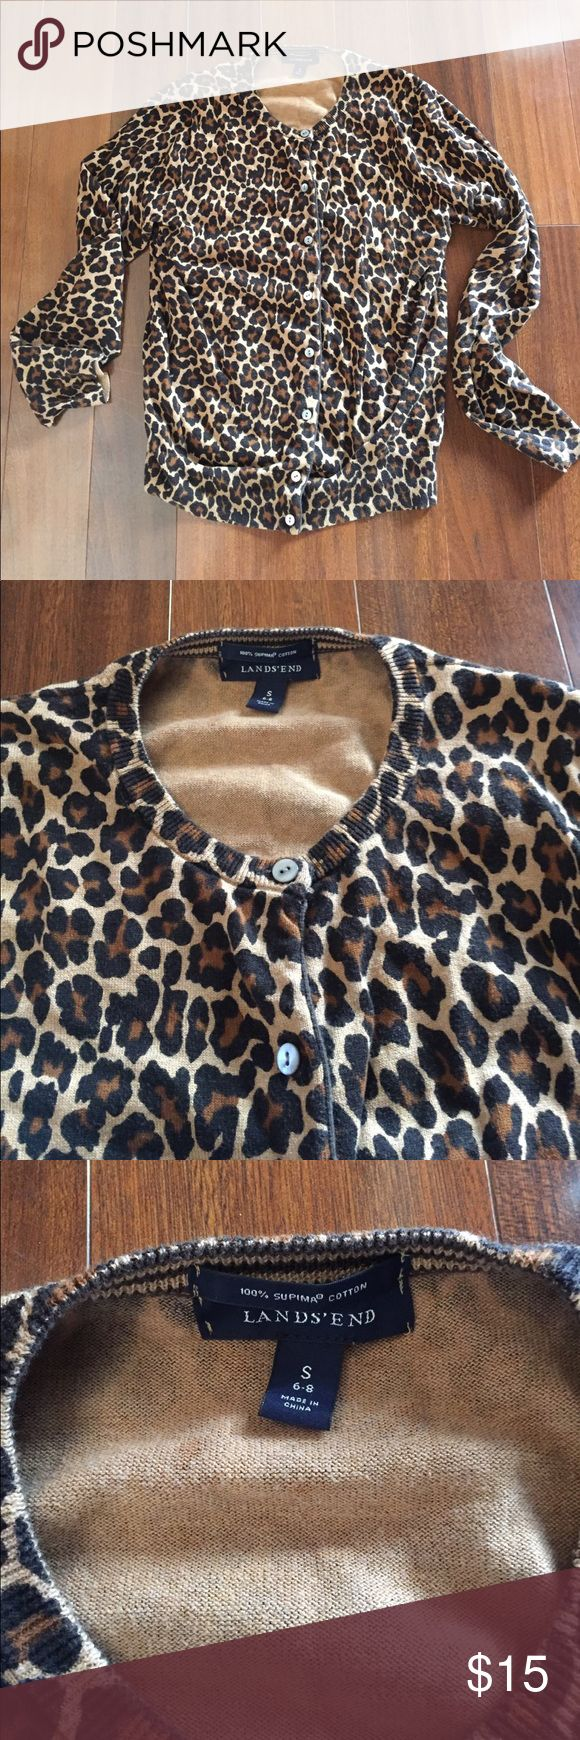 Cheetah cardigan Gently used but still in good condition. No pilling. Long sleeve button down cardigan. Size small (6-8) runs a little on the big side. Lands' End Sweaters Cardigans